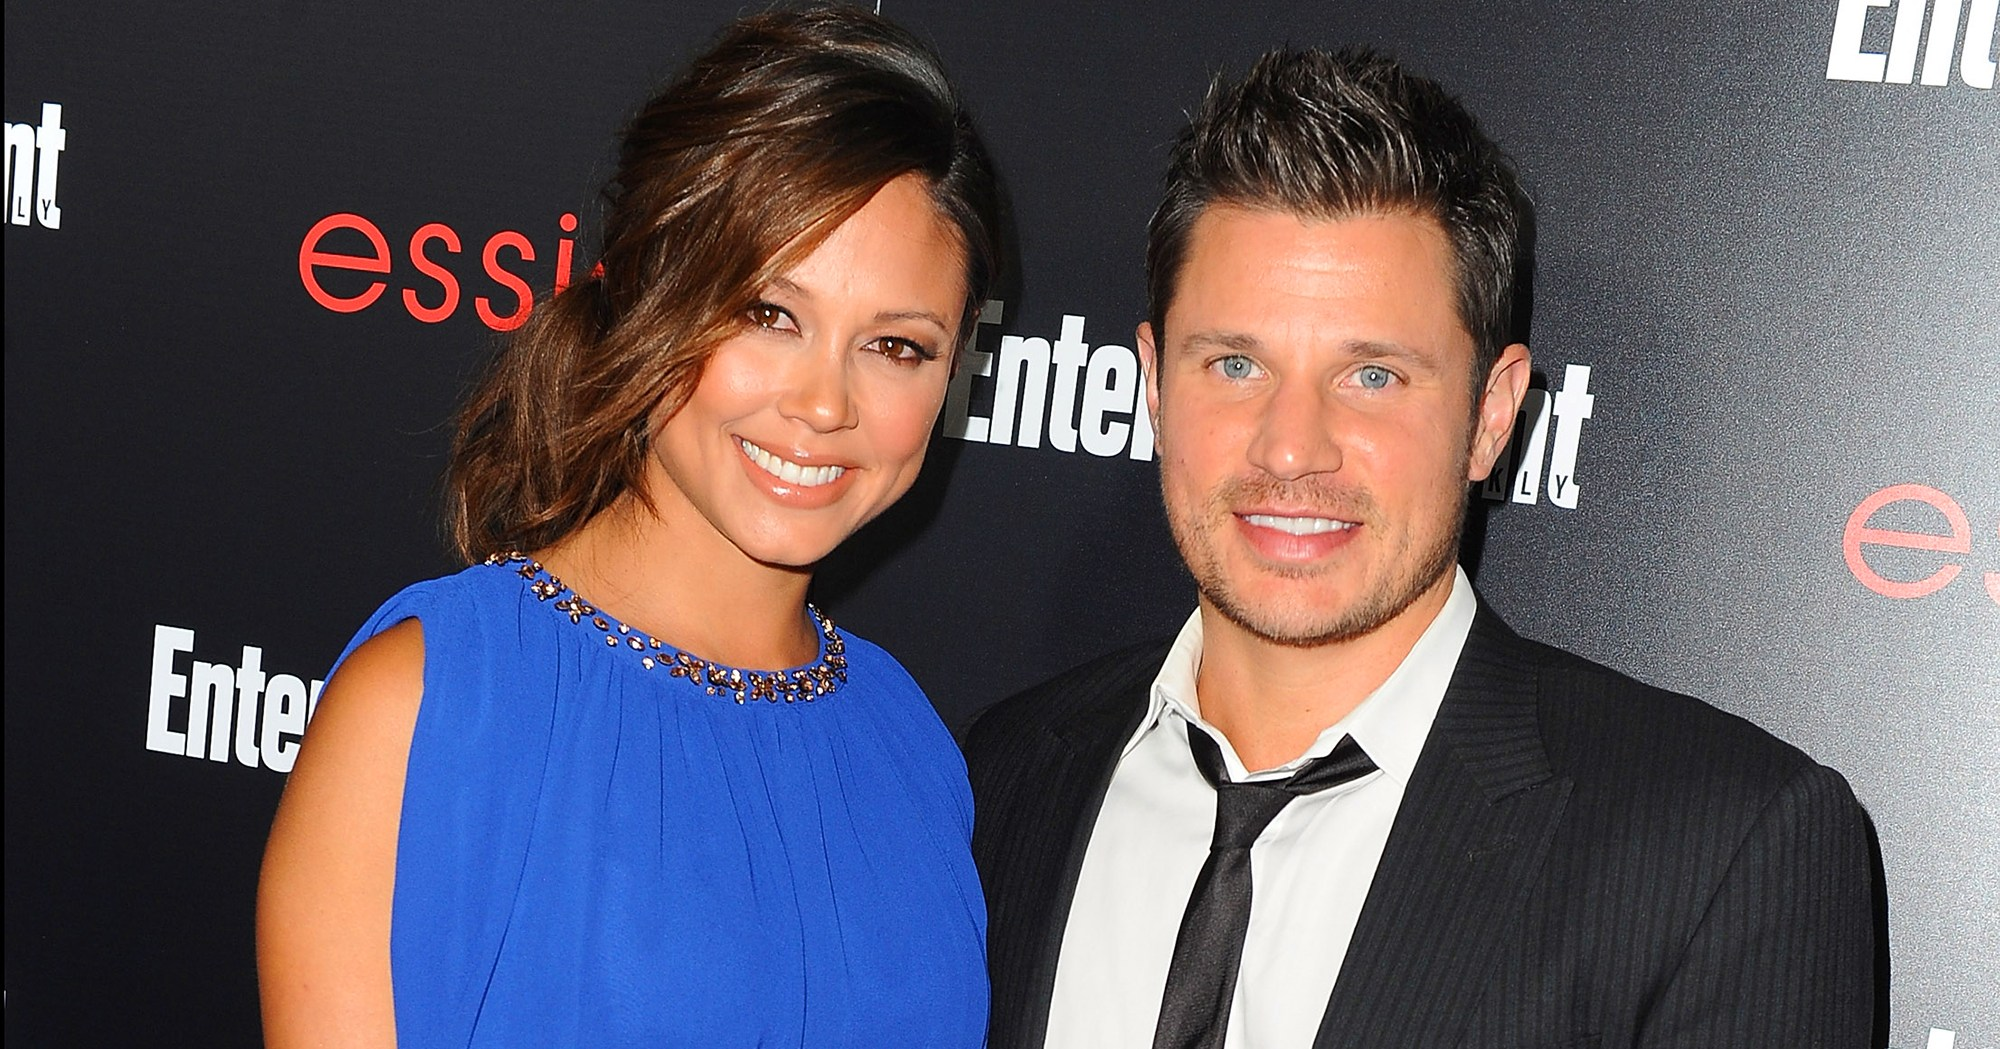 Nick and Vanessa Lachey: A Timeline of Their Relationship